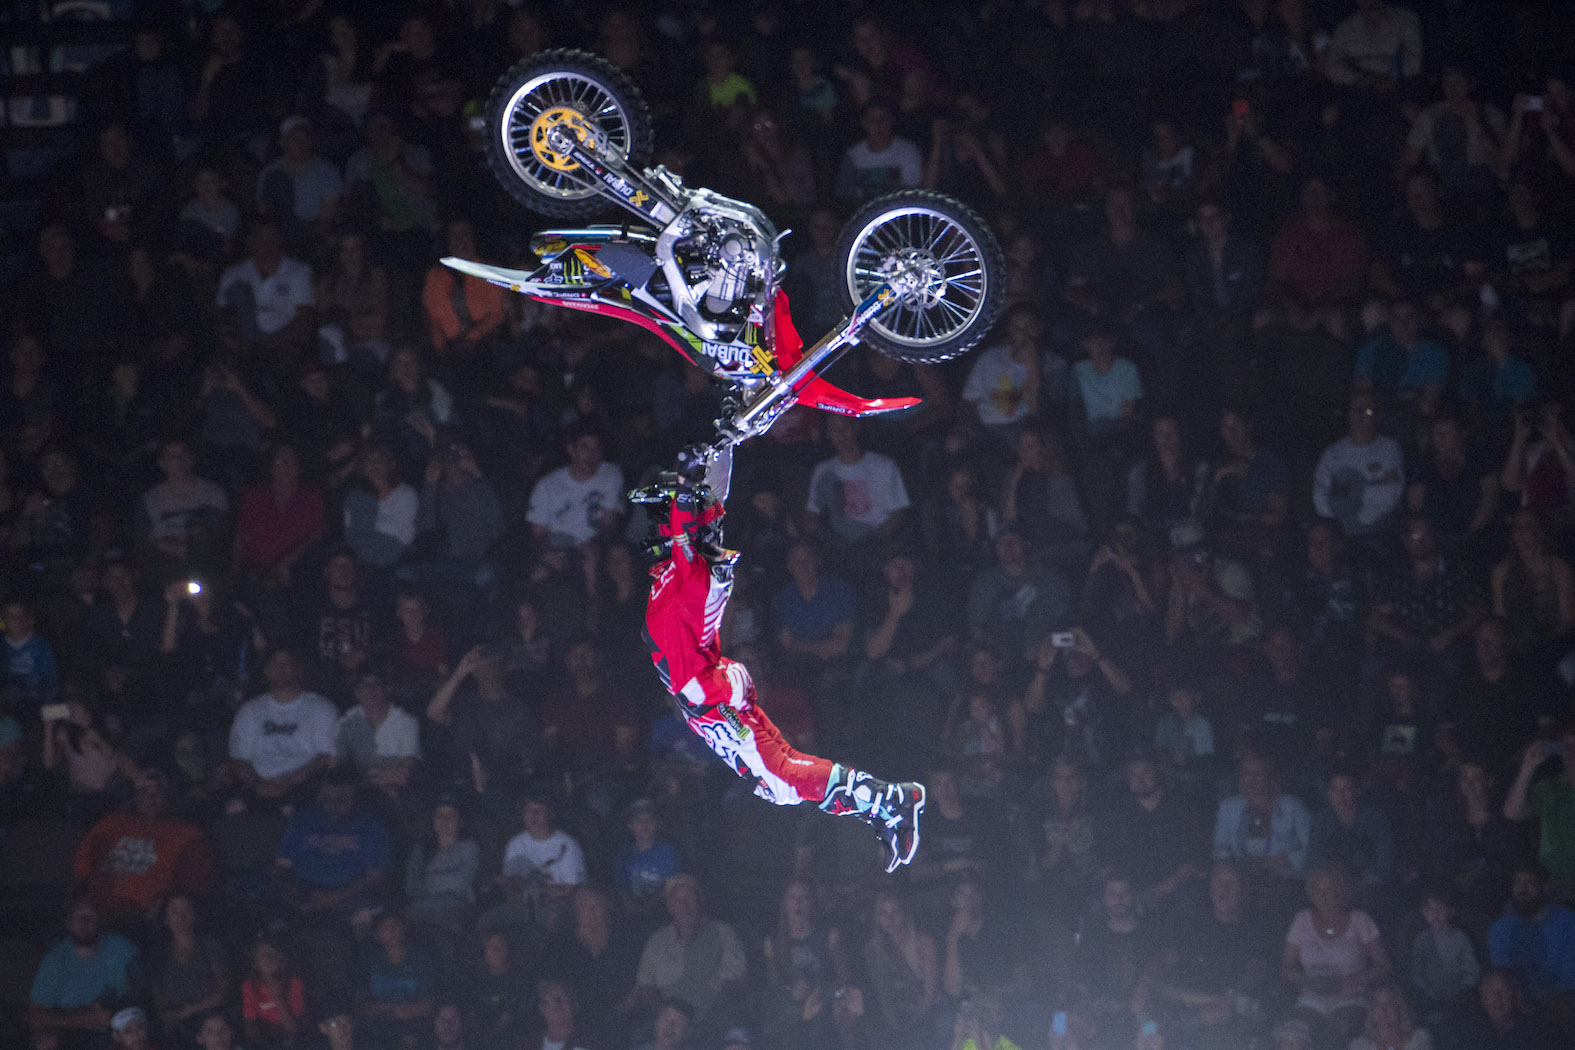 We interview Josh Sheehan about performing at Nitro Circus Live South Africa